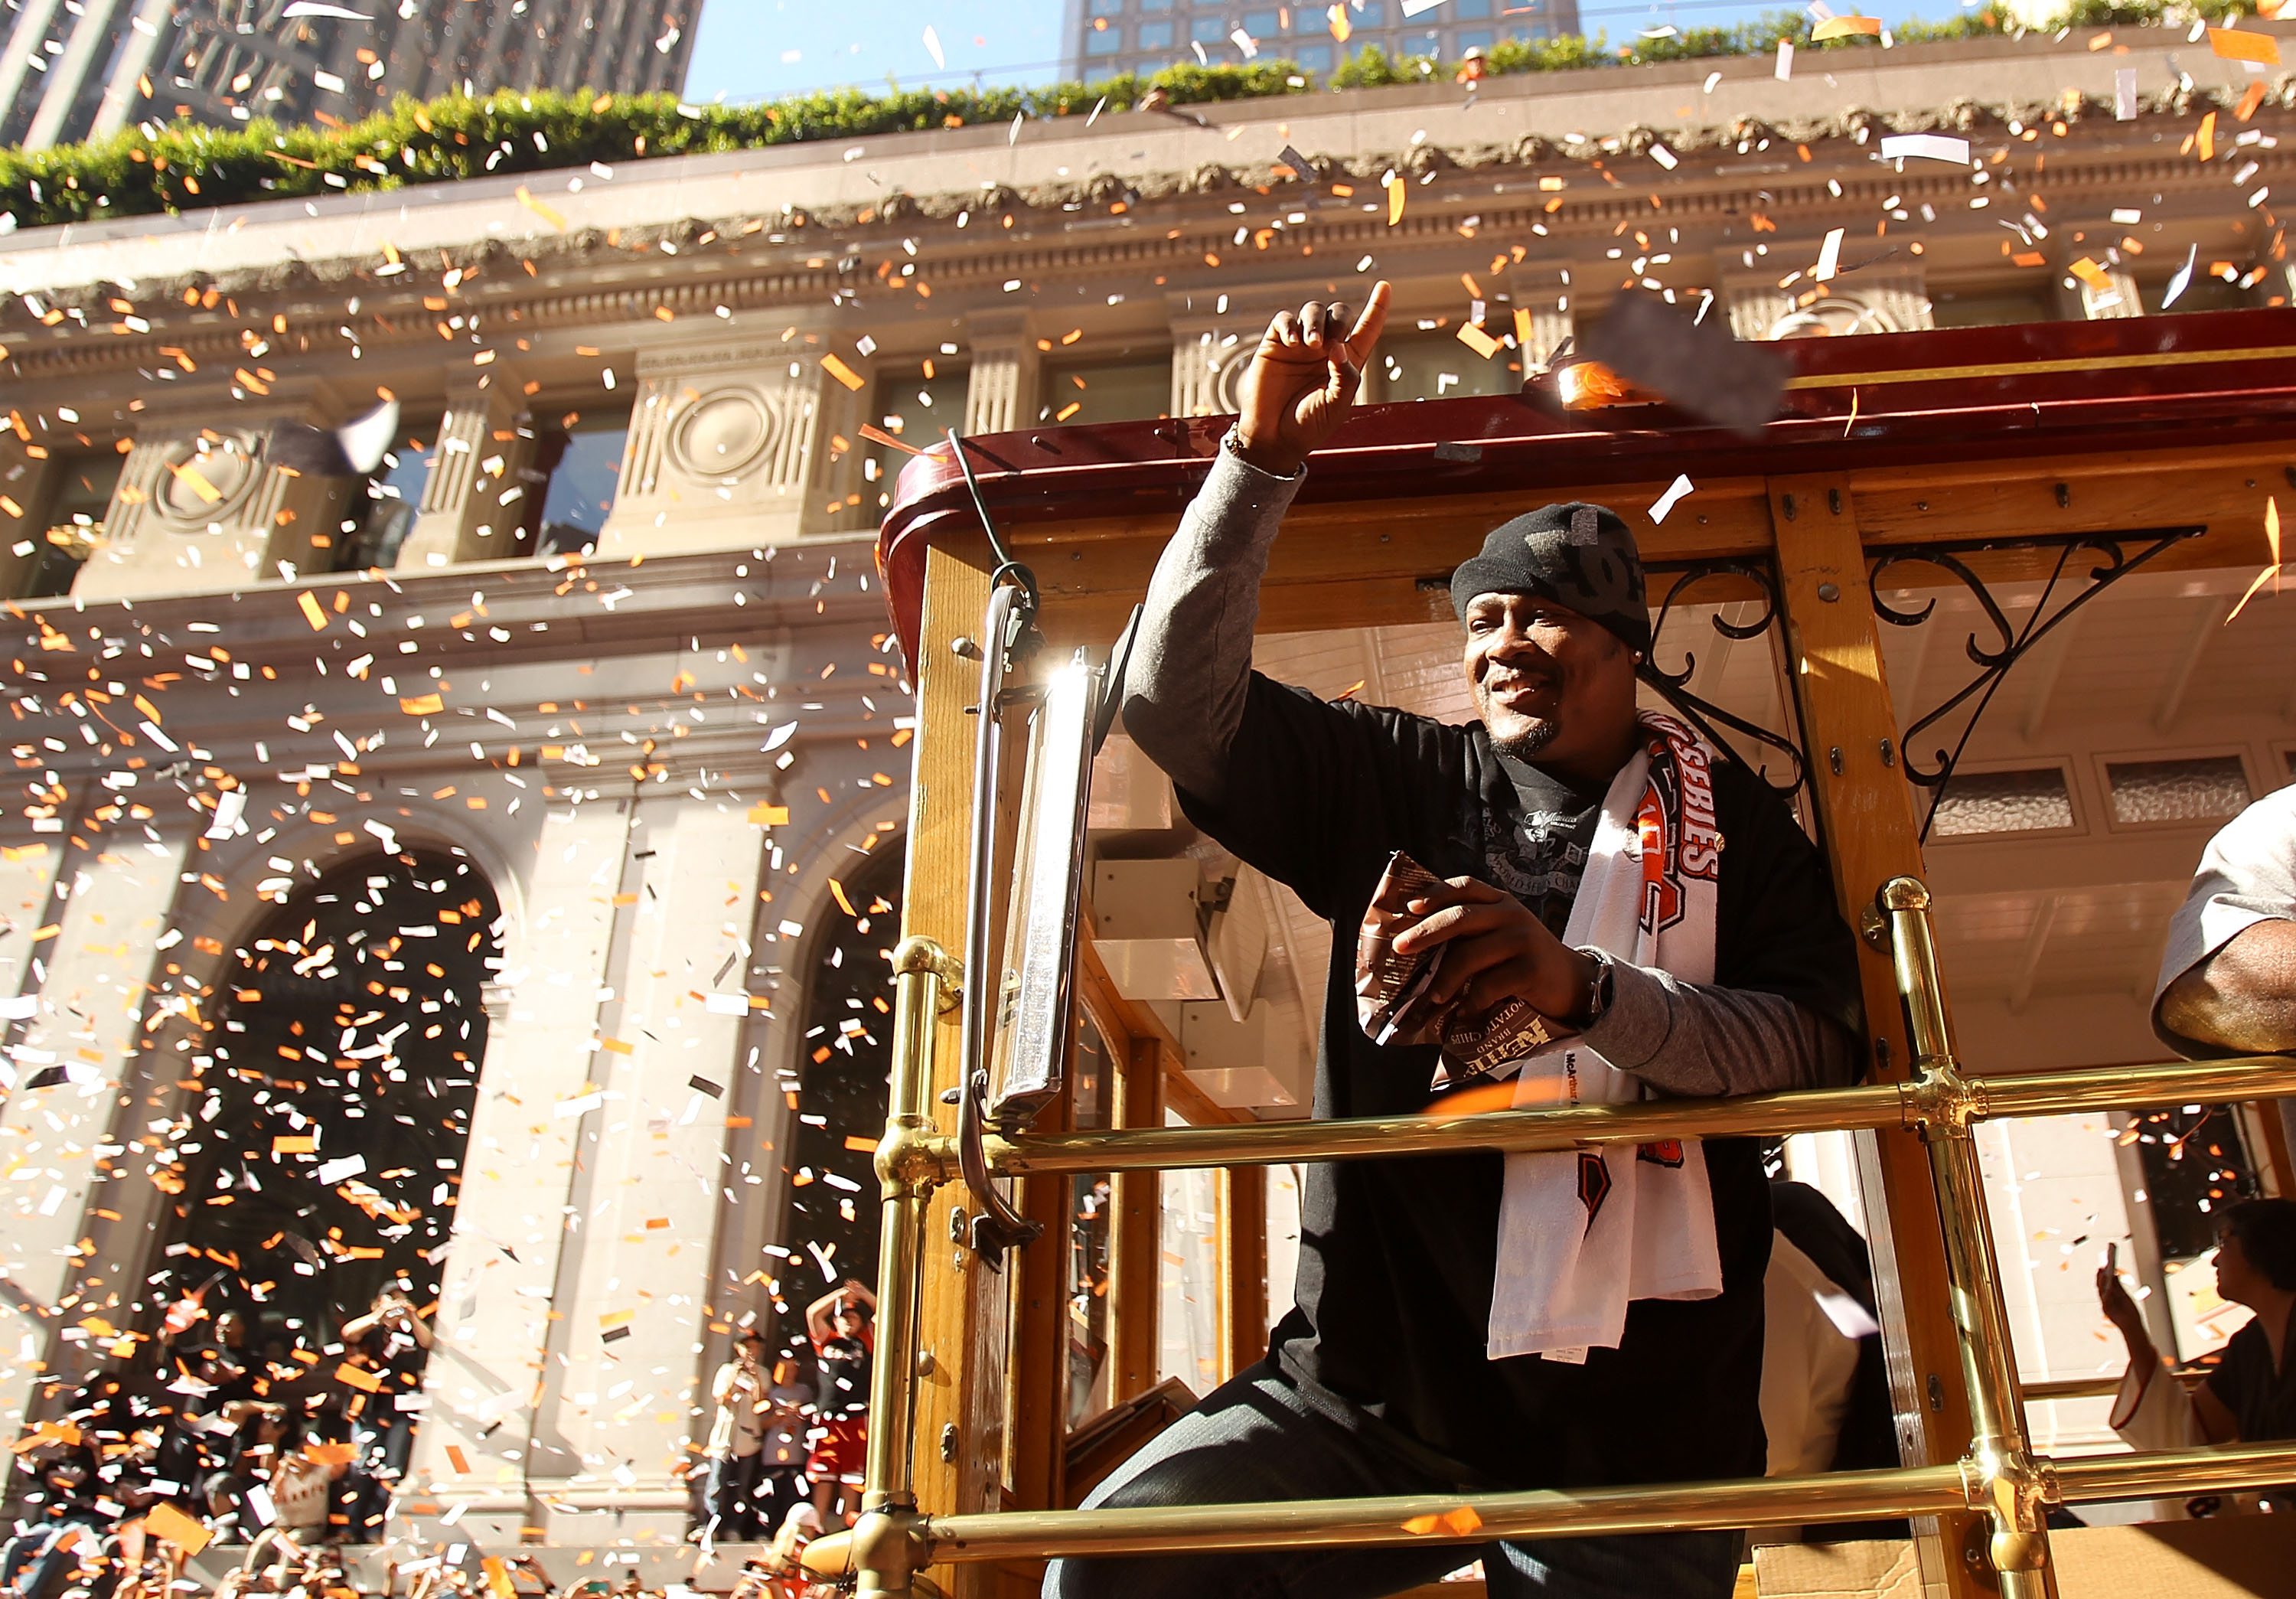 SAN FRANCISCO - NOVEMBER 03:  Juan Uribe of the San Francisco Giants waves to the crowd during the San Francisco Giants victory parade on November 3, 2010 in San Francisco, California.  (Photo by Ezra Shaw/Getty Images)